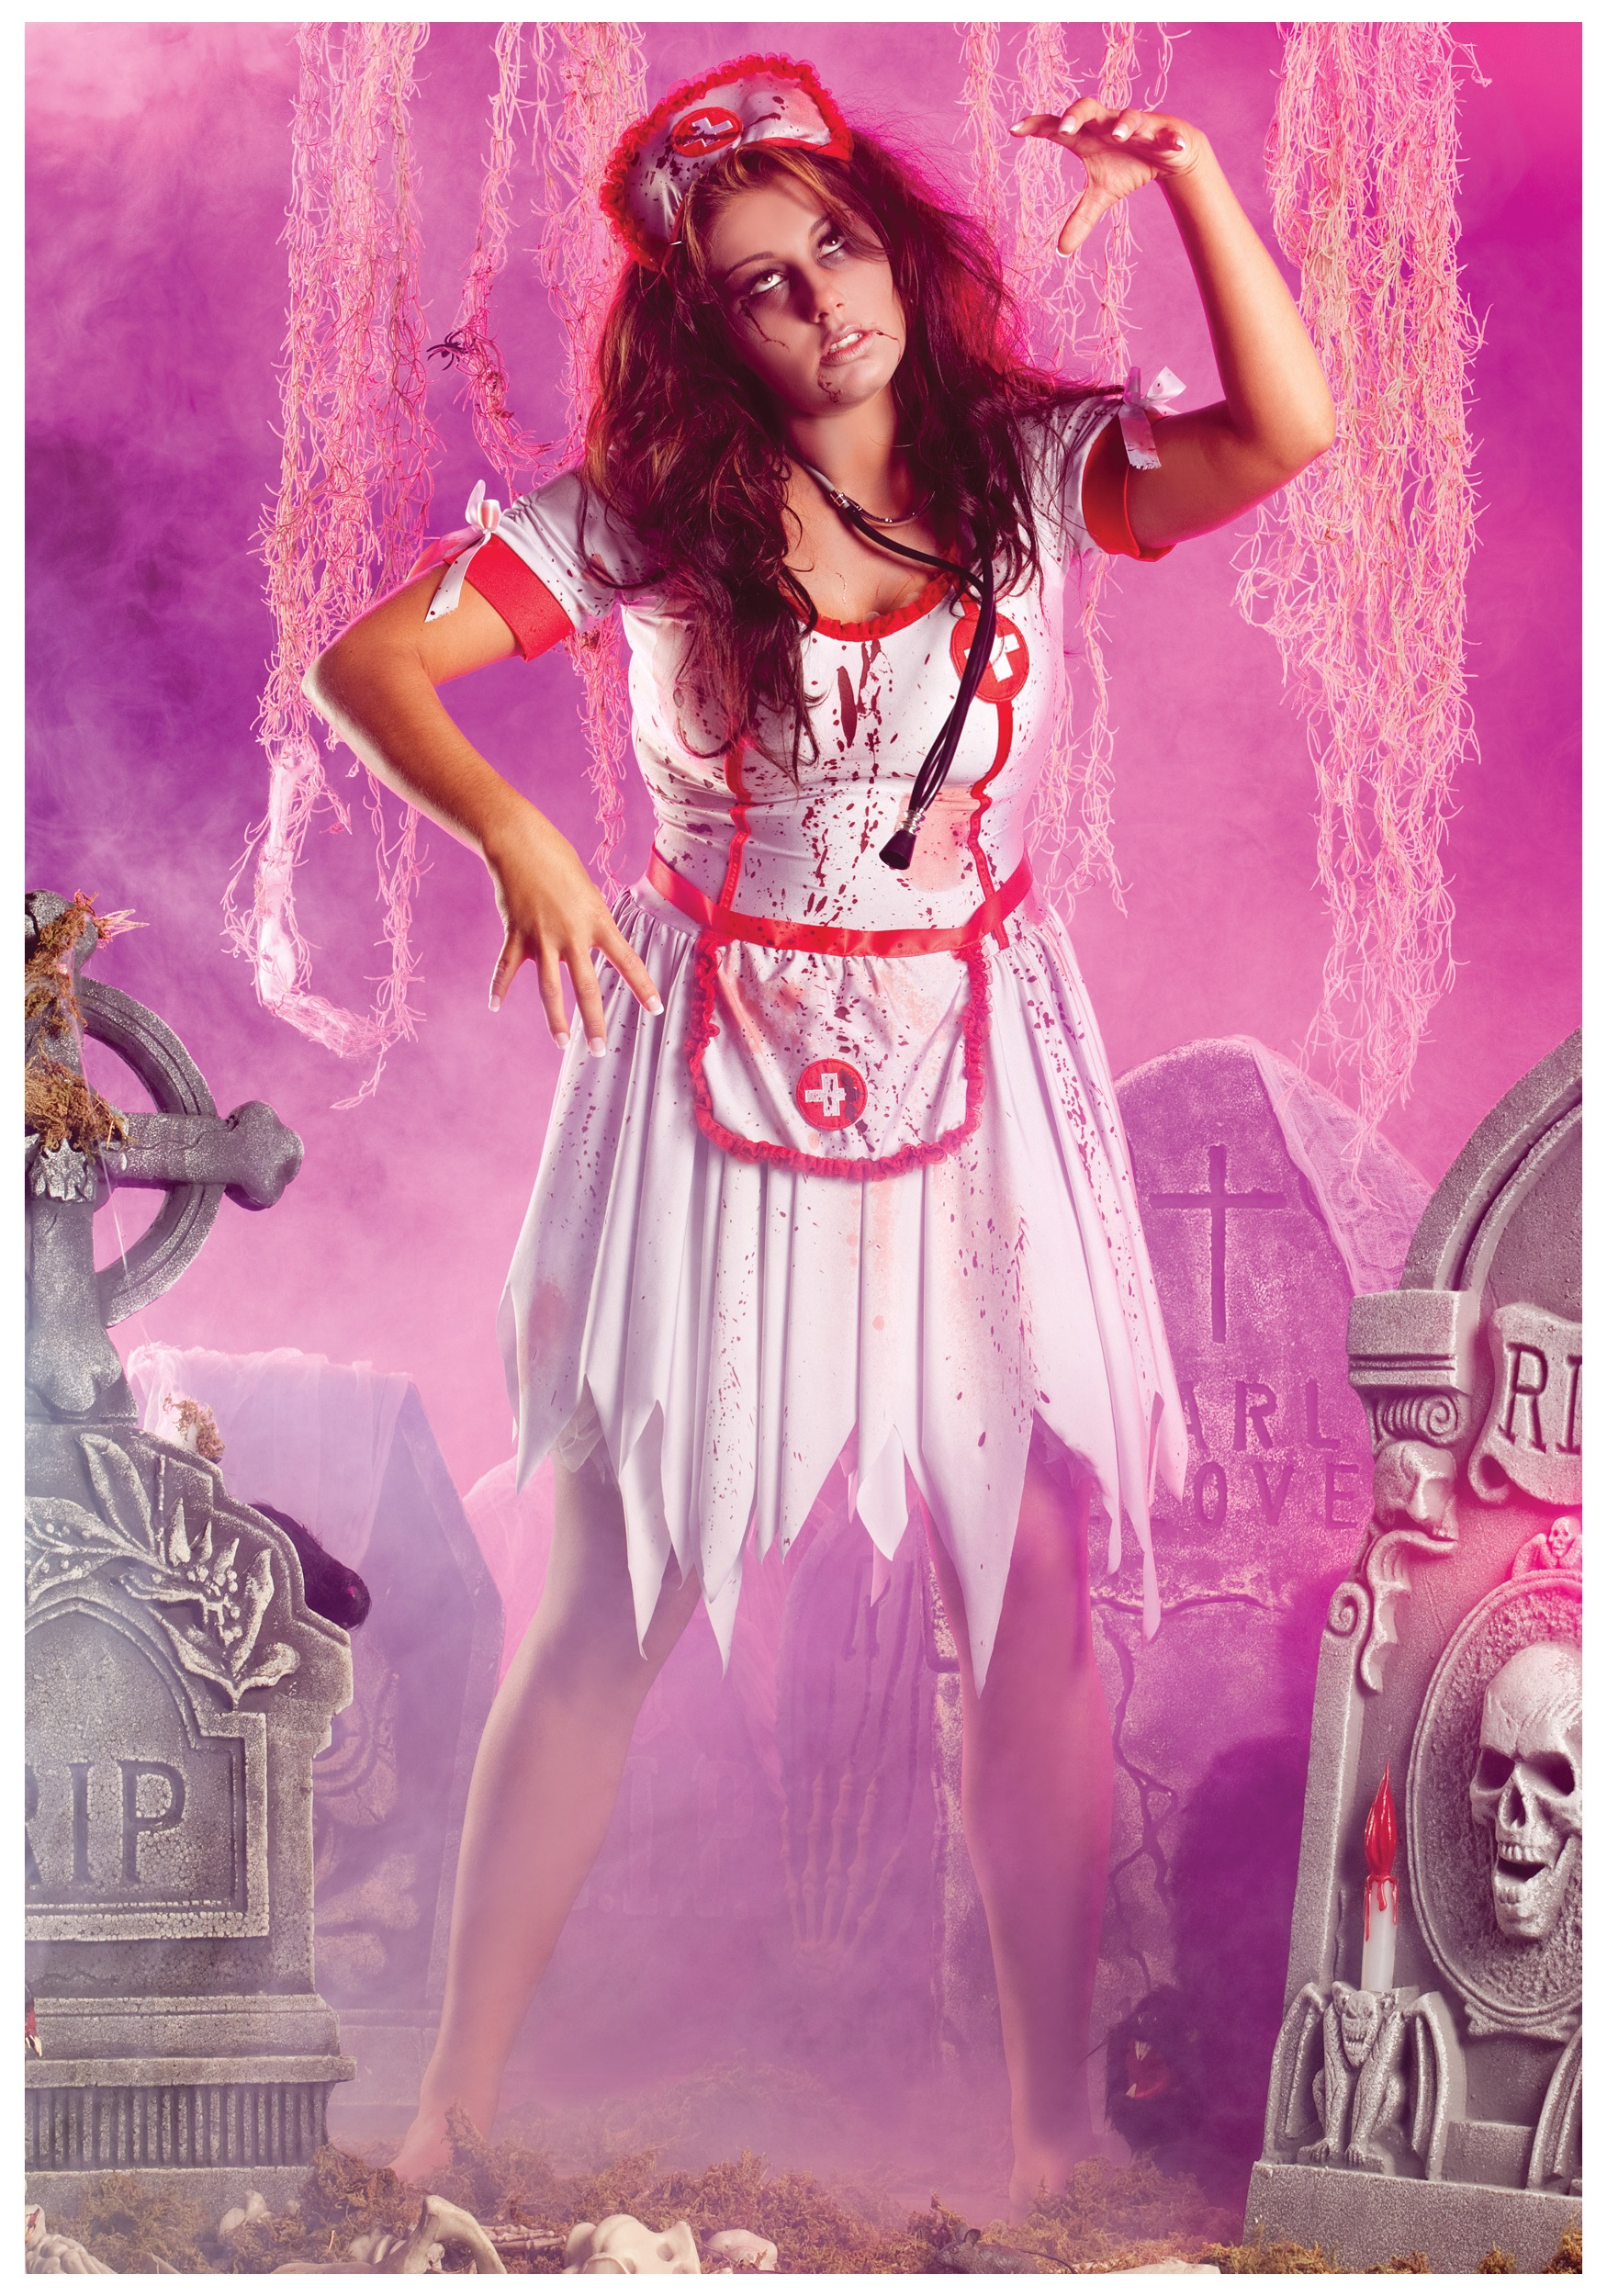 Plus Size Undead Nurse Costume - Scary Zombie Occupation Costumes